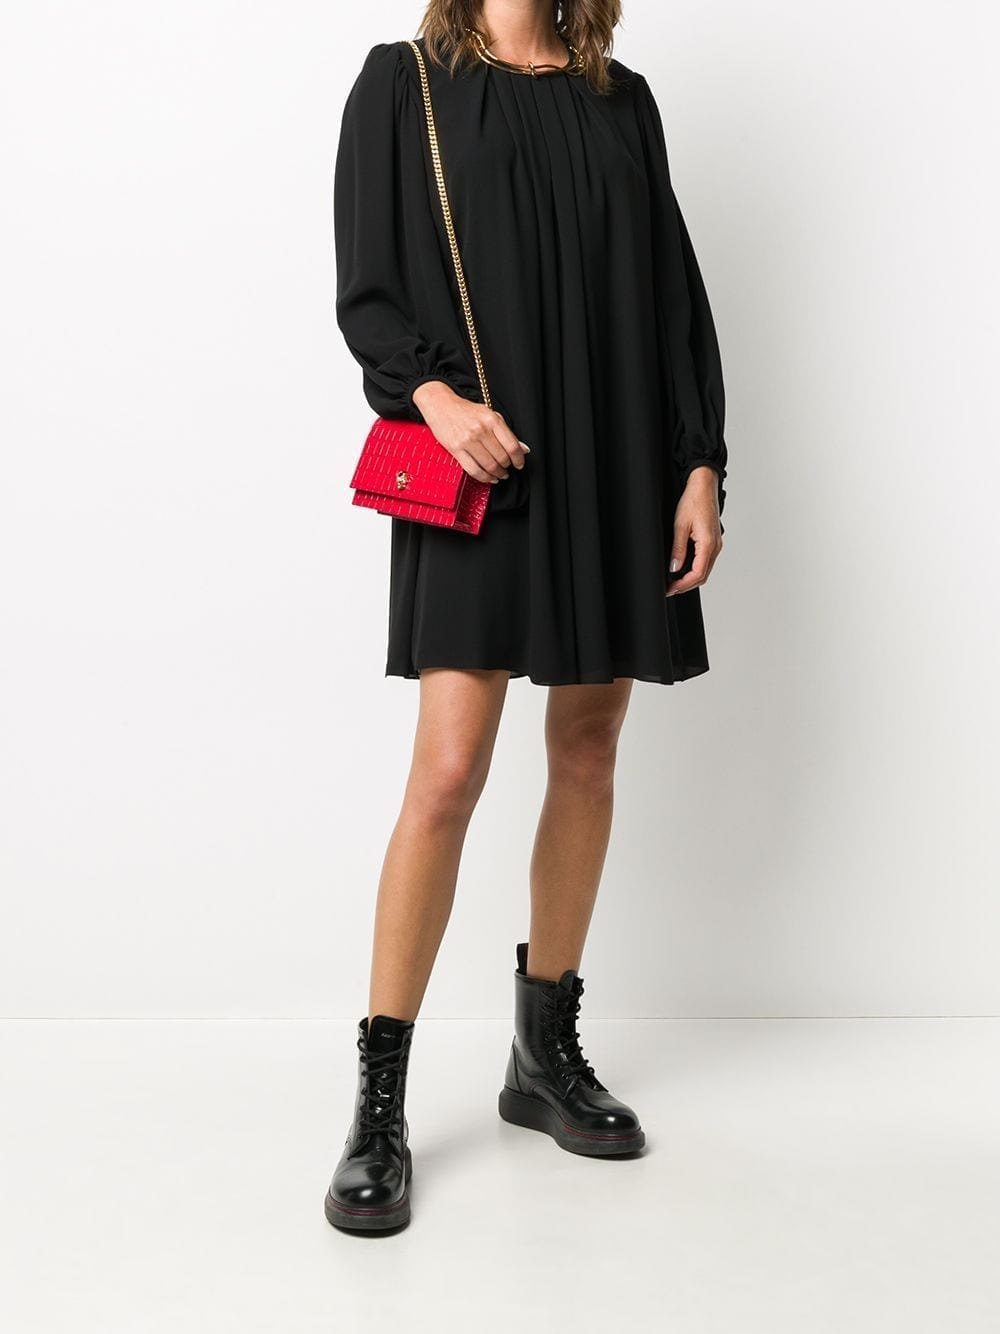 ALEXANDER MCQUEEN Pleated Shift Dress